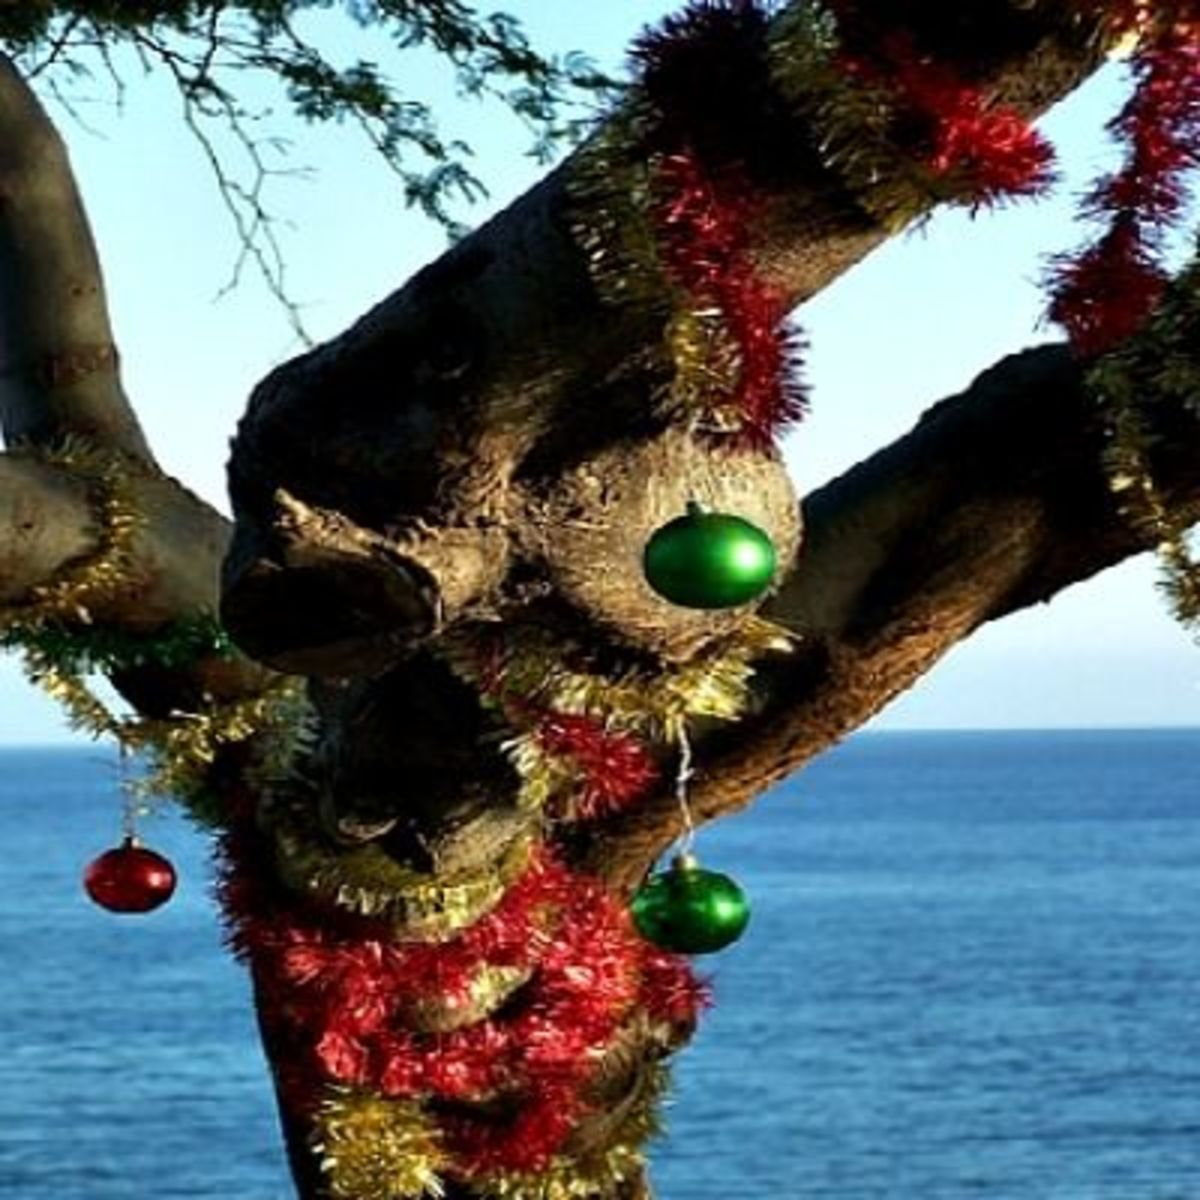 The keawe tree needs some Christmas cheer